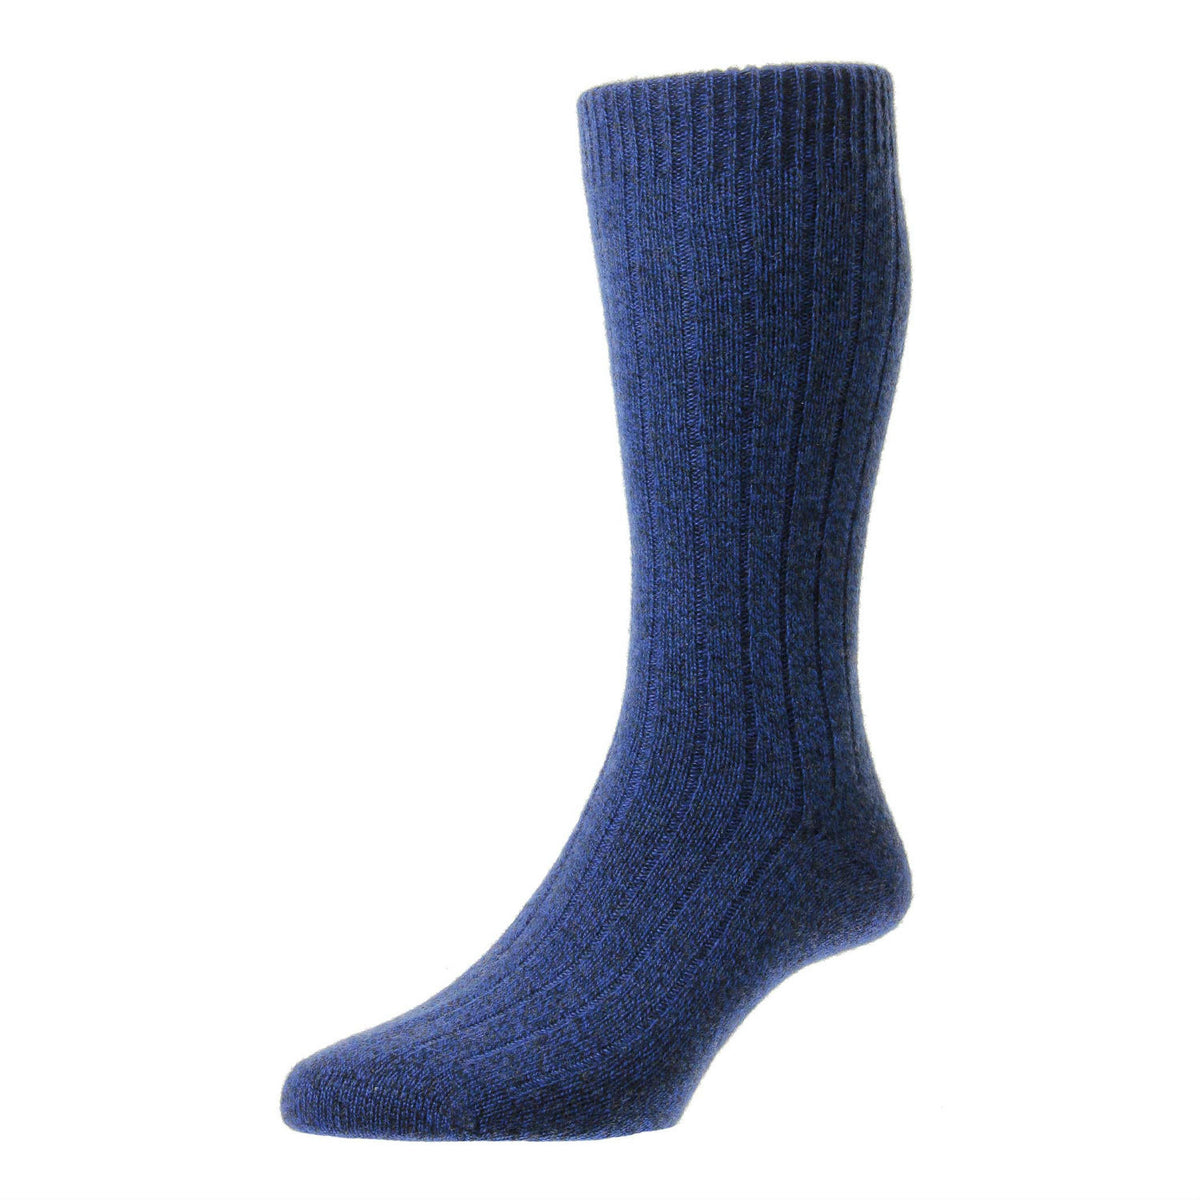 Royal Denim Blue | Mens Cashmere Socks | Made in England | Calf Length Sock | buy now at The Cashmere Choice London